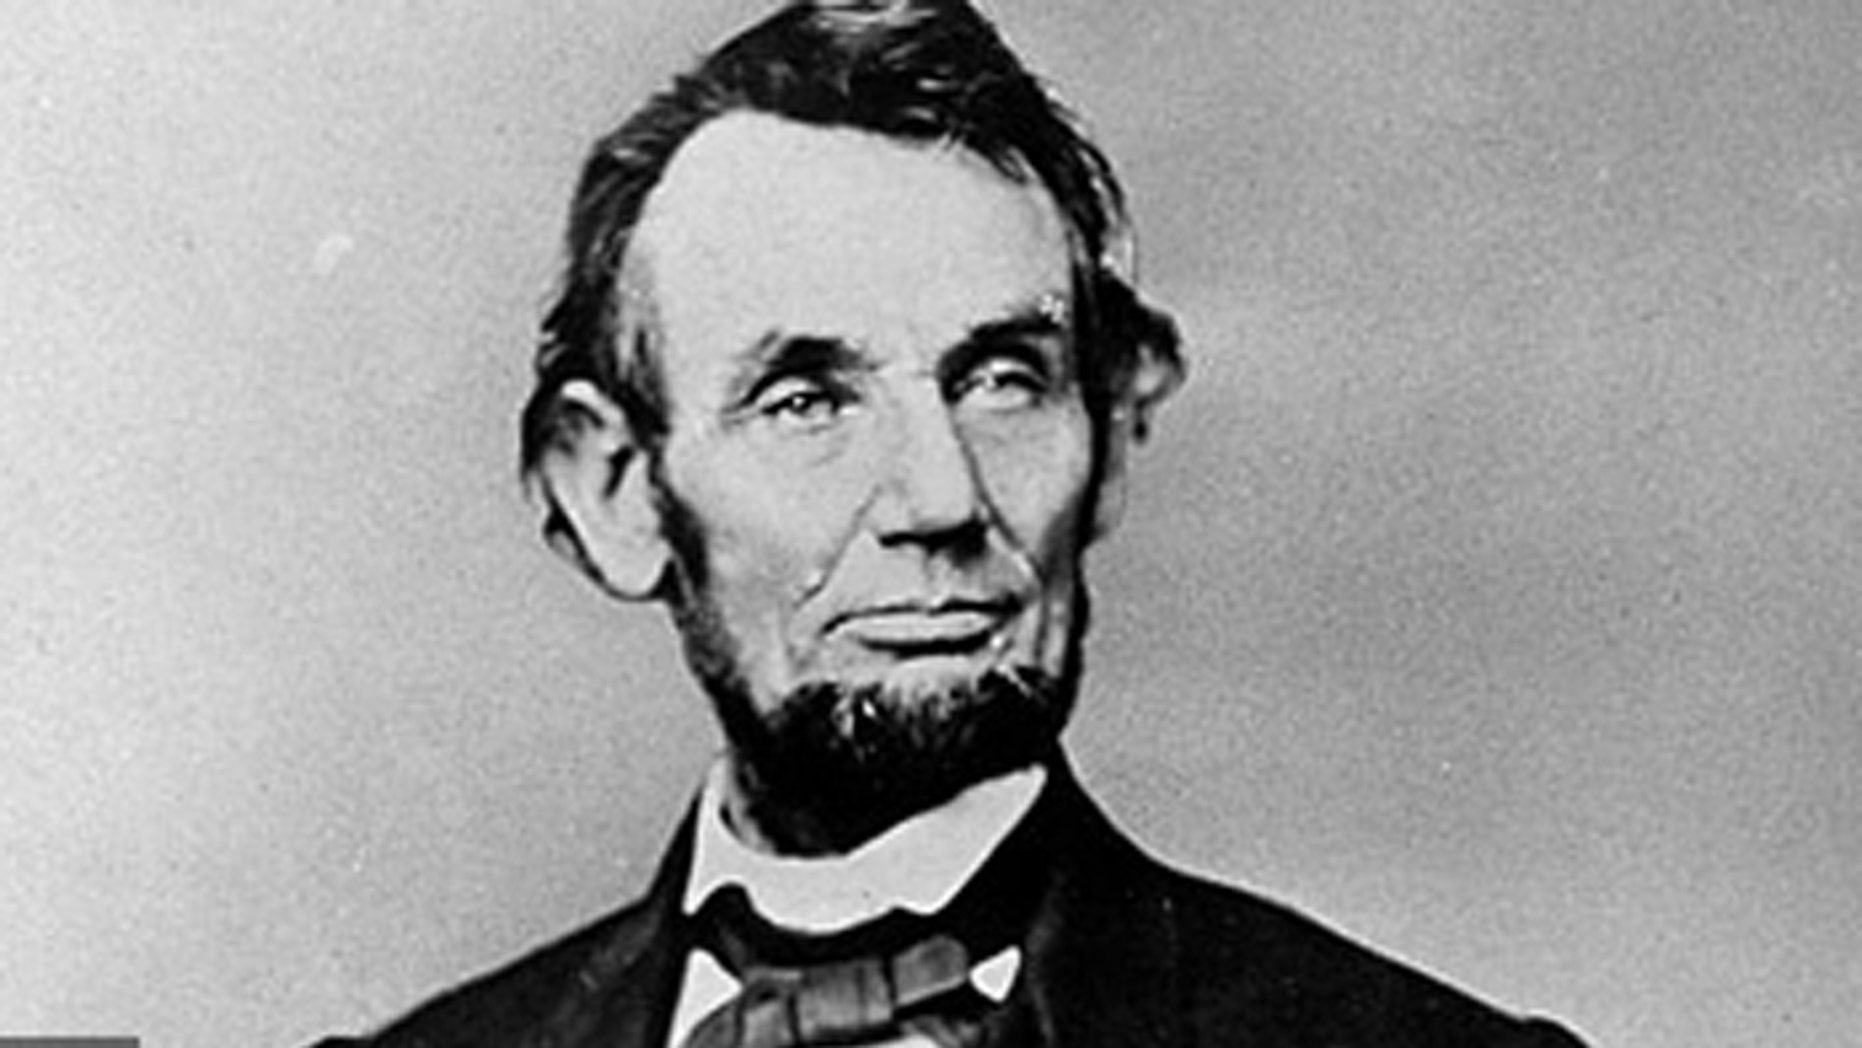 Lincoln's letter helped land Cross a job as chaplain.